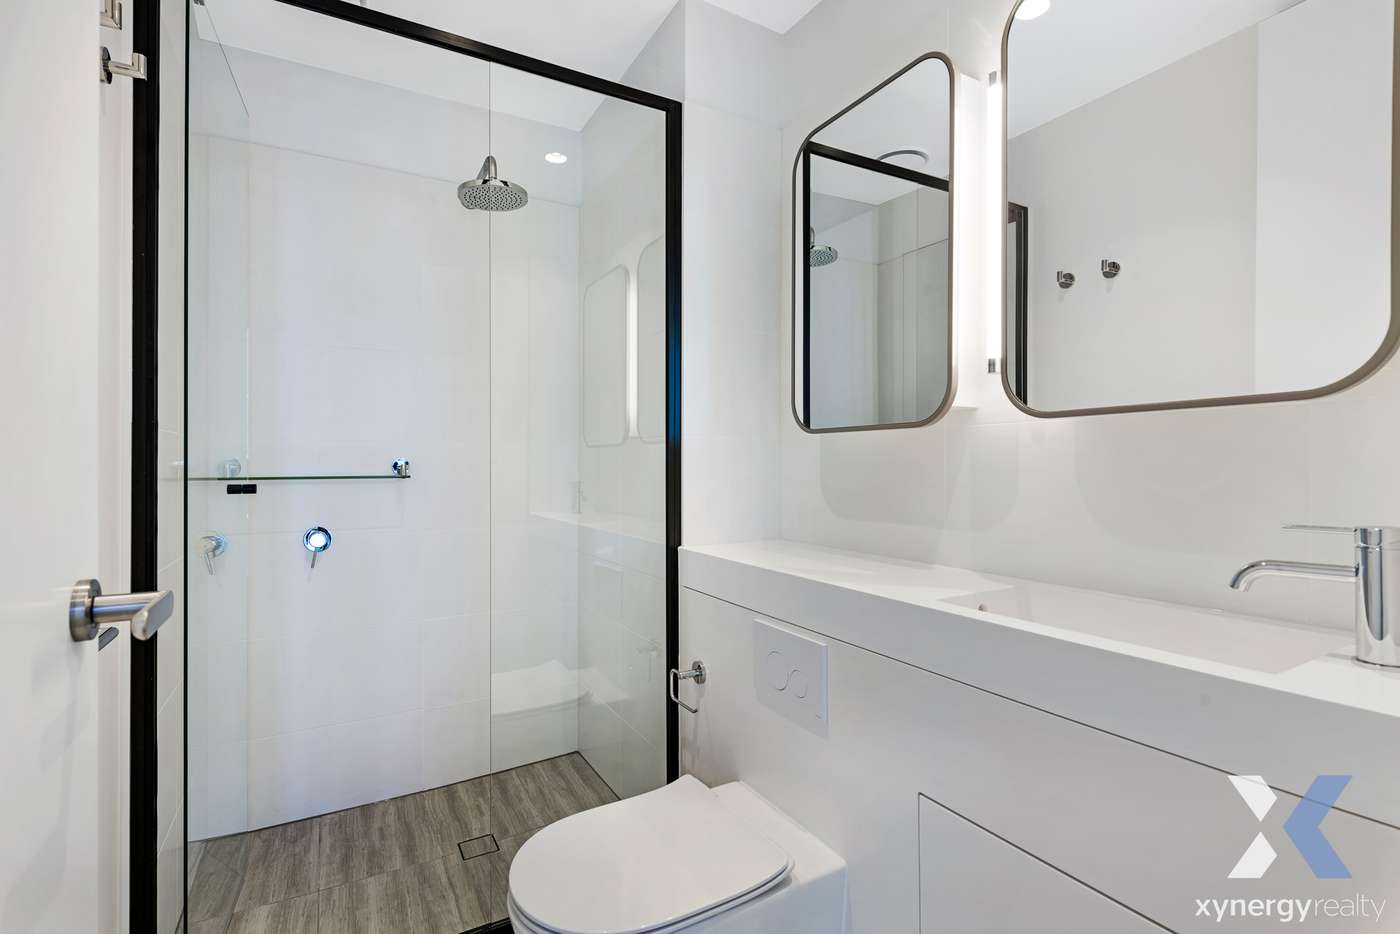 Sixth view of Homely apartment listing, 6306/462 Elizabeth Street, Melbourne VIC 3000